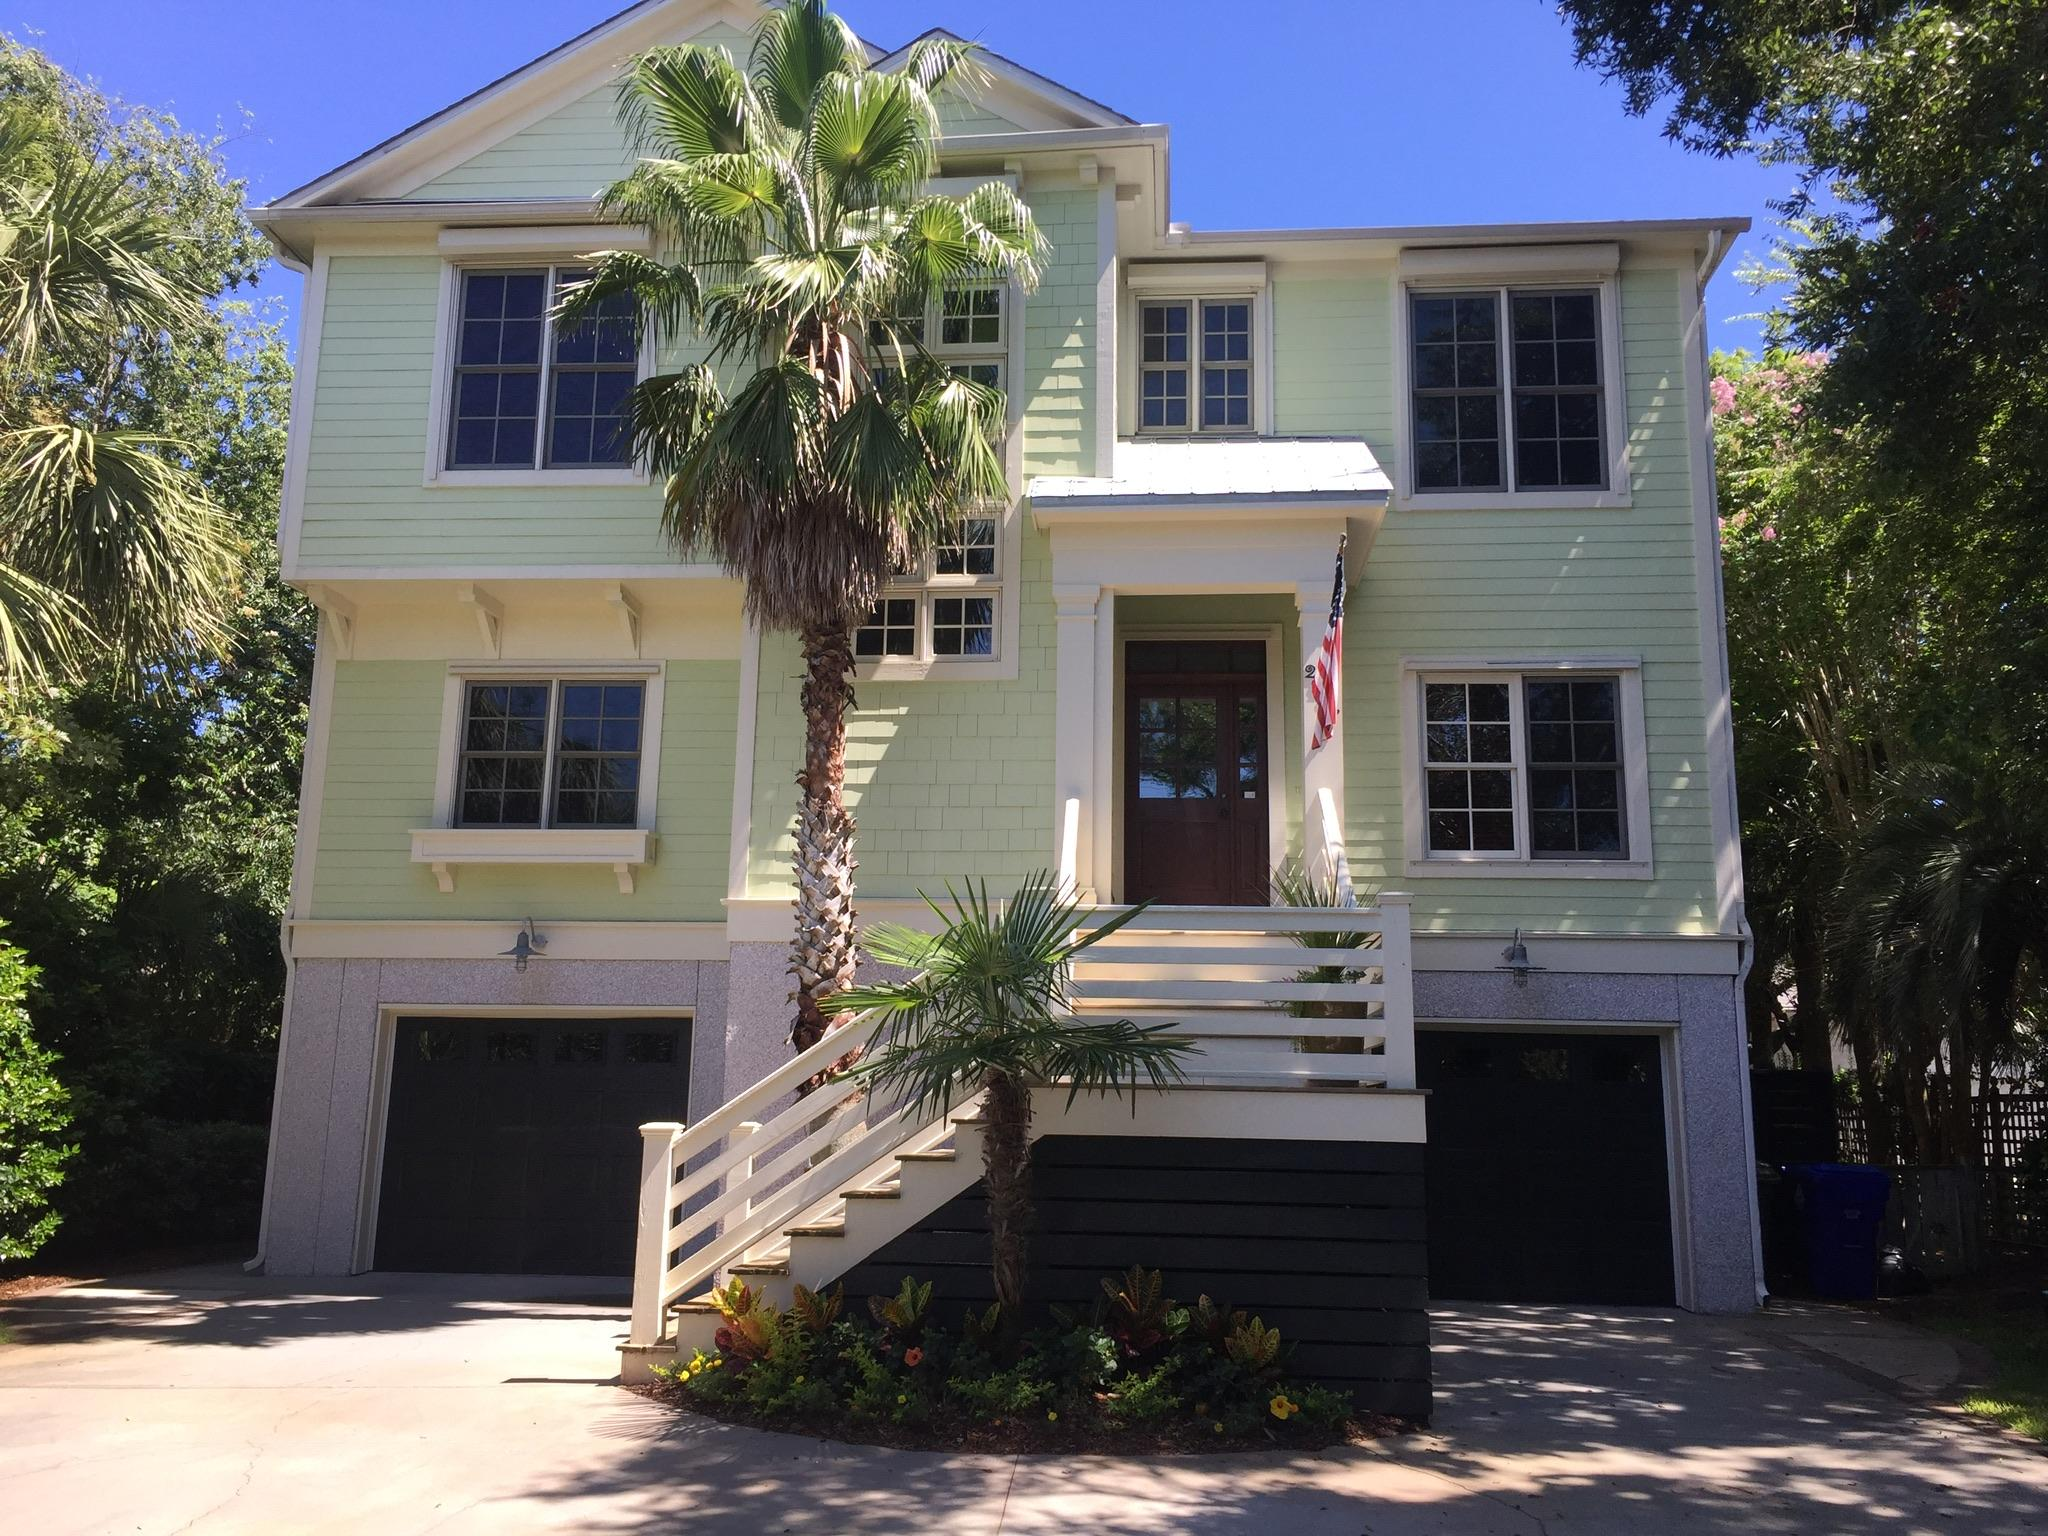 Photo of 2204 Cameron Blvd, Isle of Palms, SC 29451